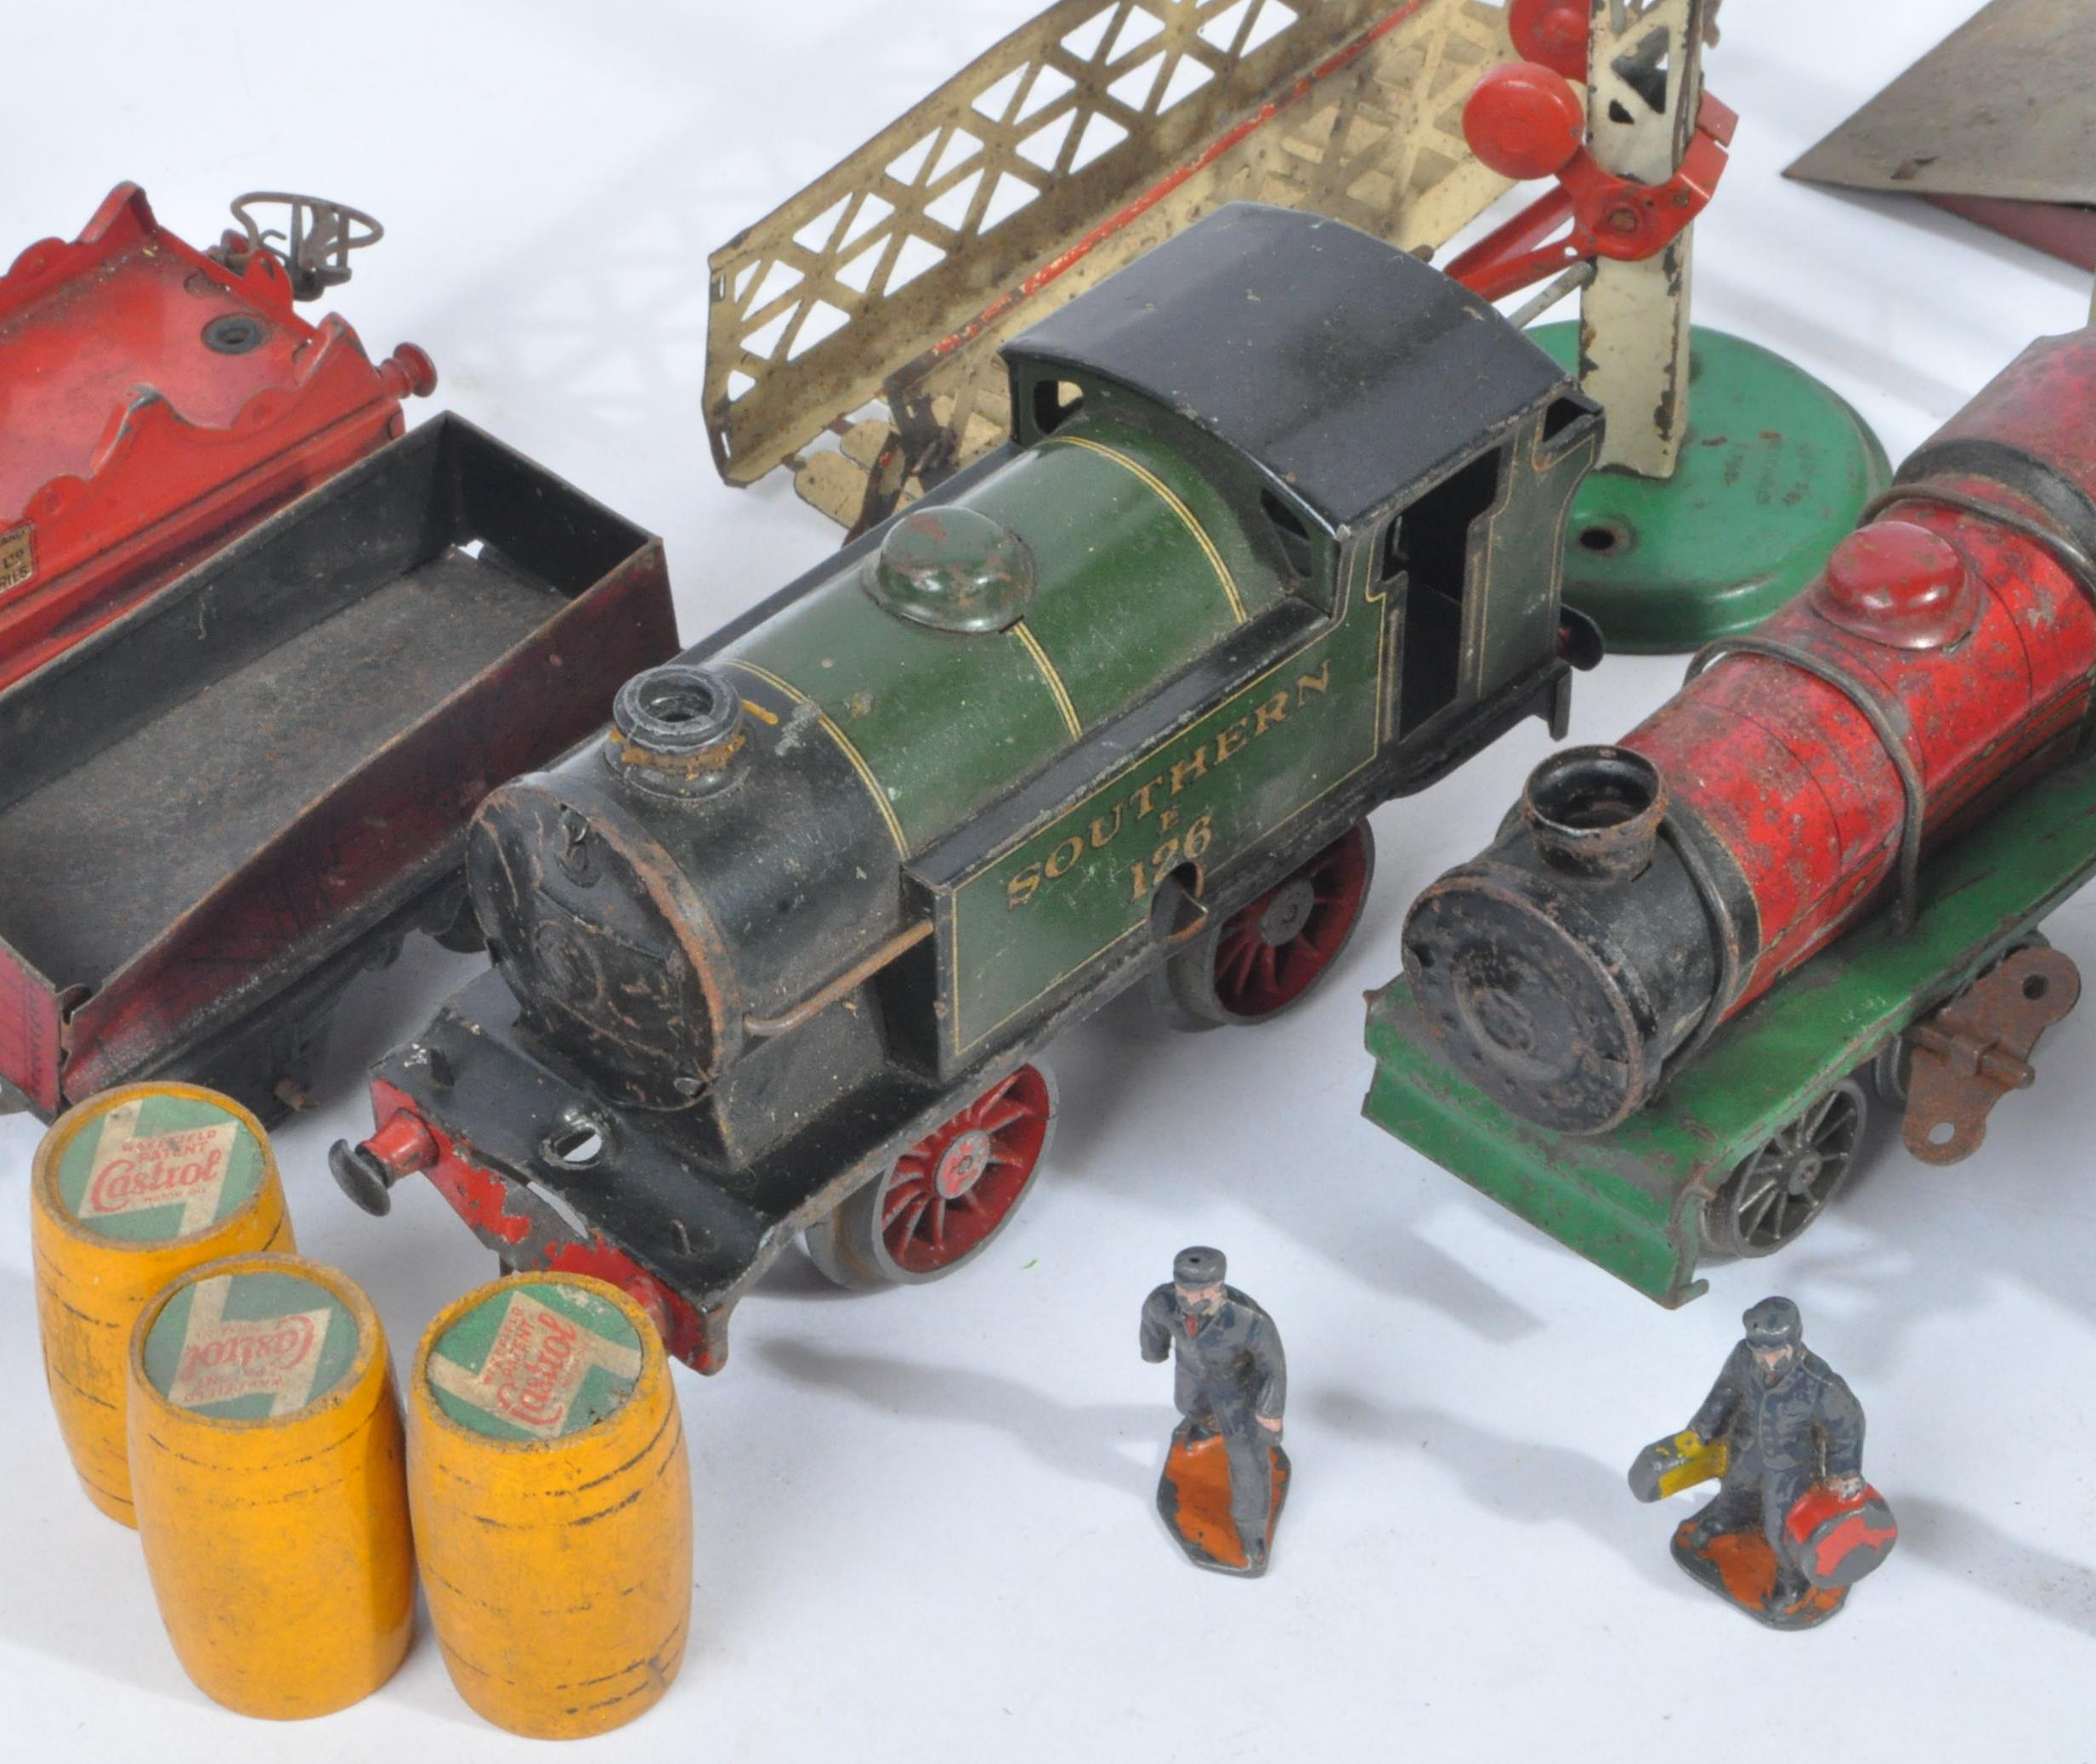 COLLECTION OF ASSORTED VINTAGE O GAUGE MODEL RAILWAY ITEMS - Image 4 of 8